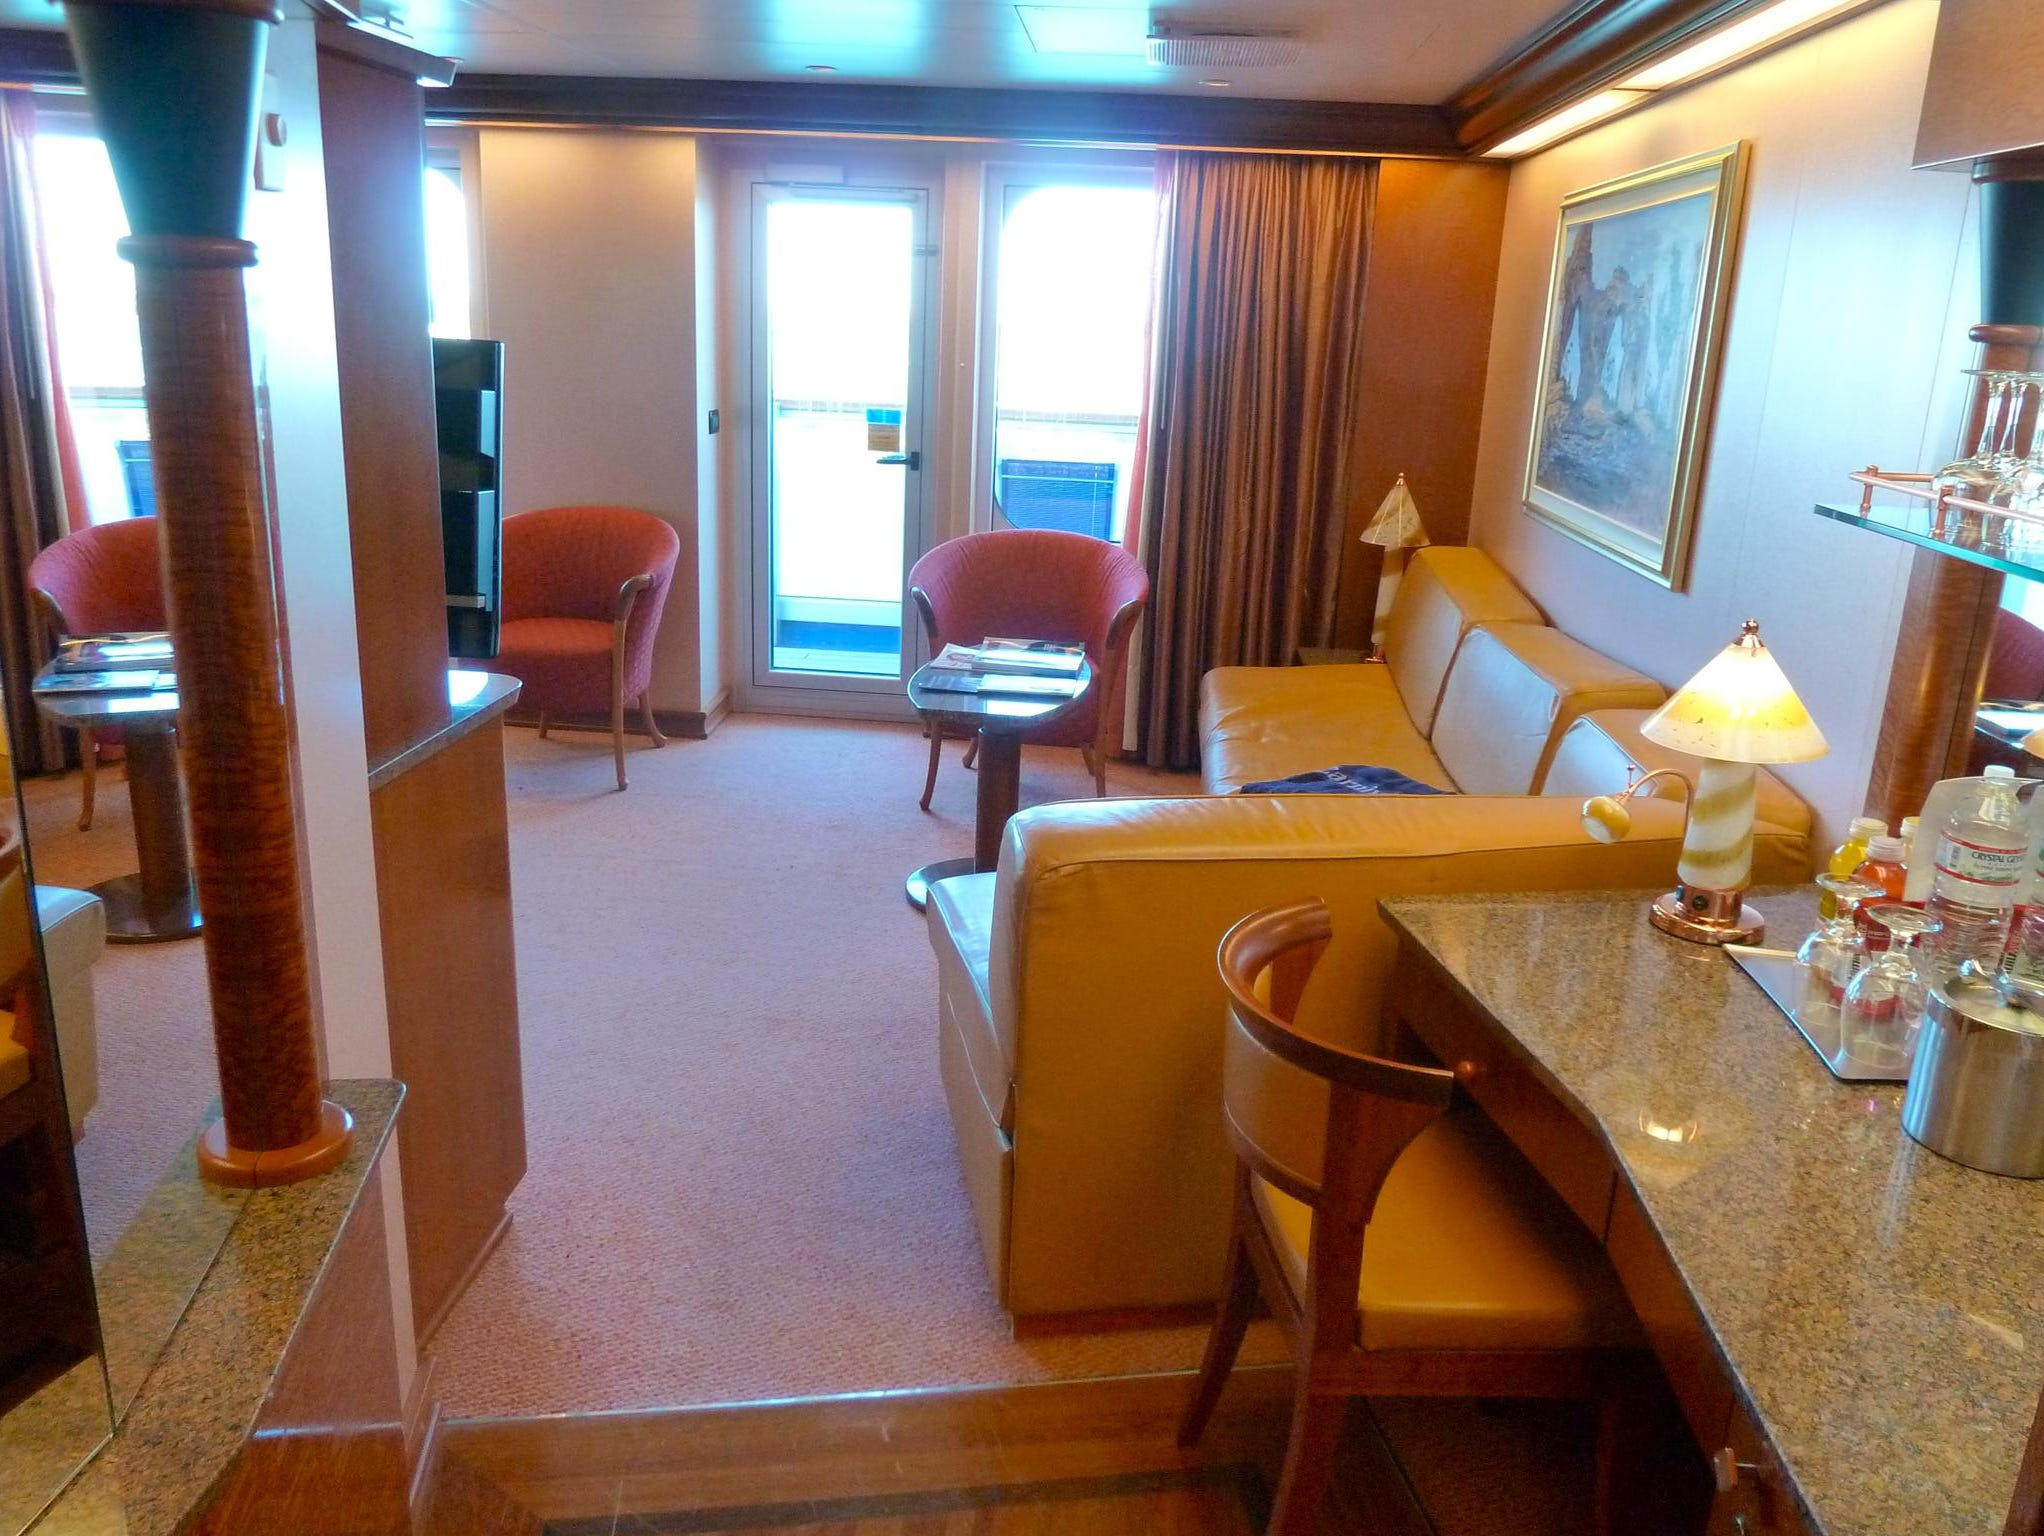 There are 10 Grand Suites on the Carnival Valor. This view shows the entryway and living room areas.